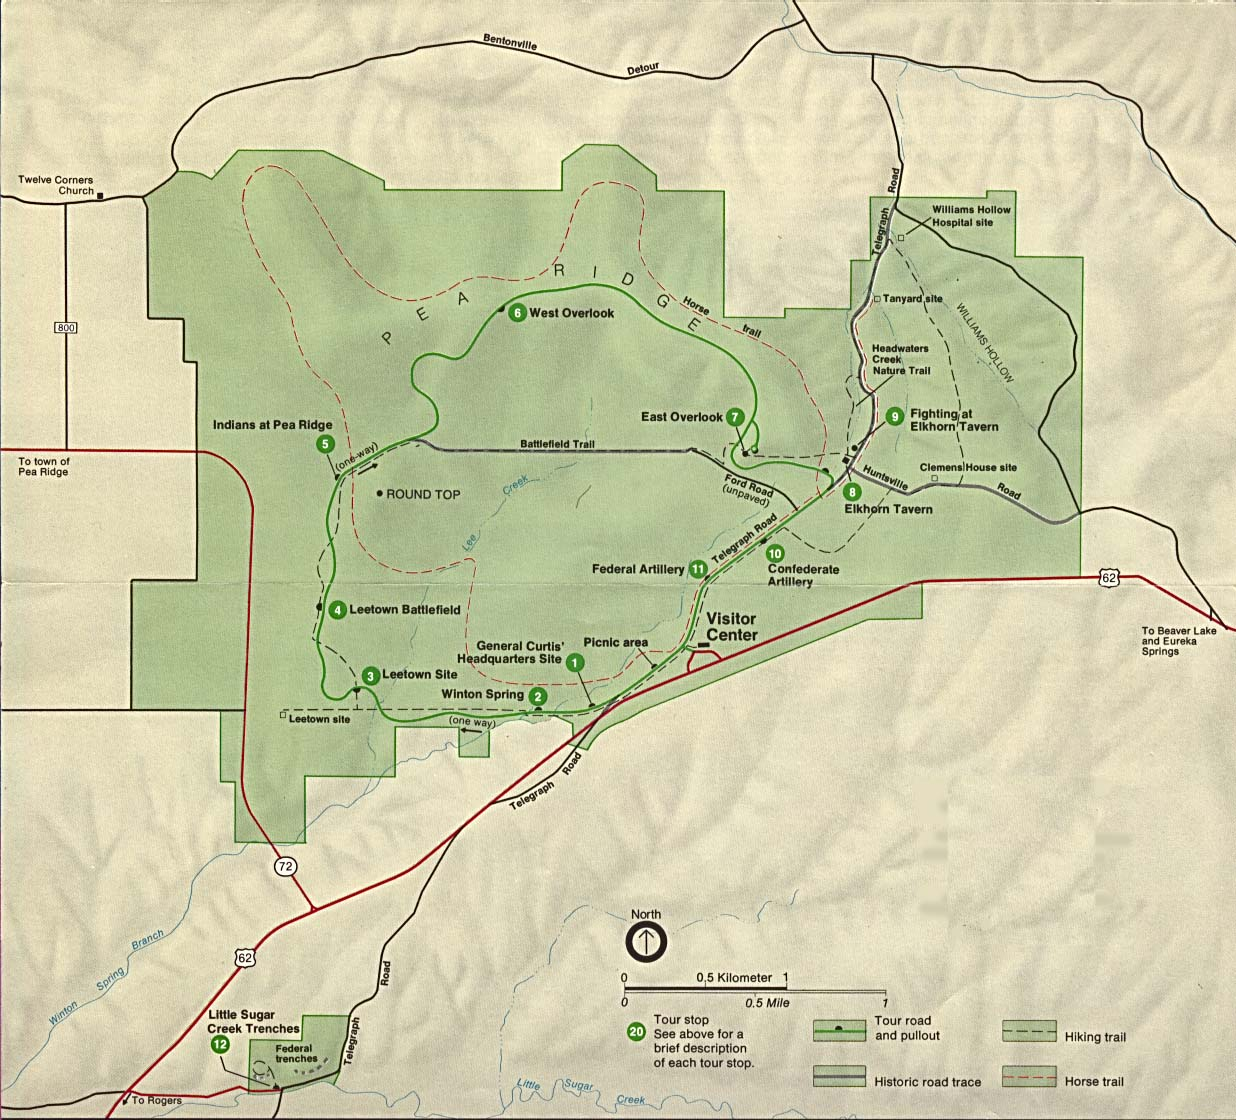 Map Of National Parks In California, A Growing Collection Of Free To Use National Park Monument Historic Site Recreation Area Battlefield Park Trails And Visitor Information Maps From, Map Of National Parks In California